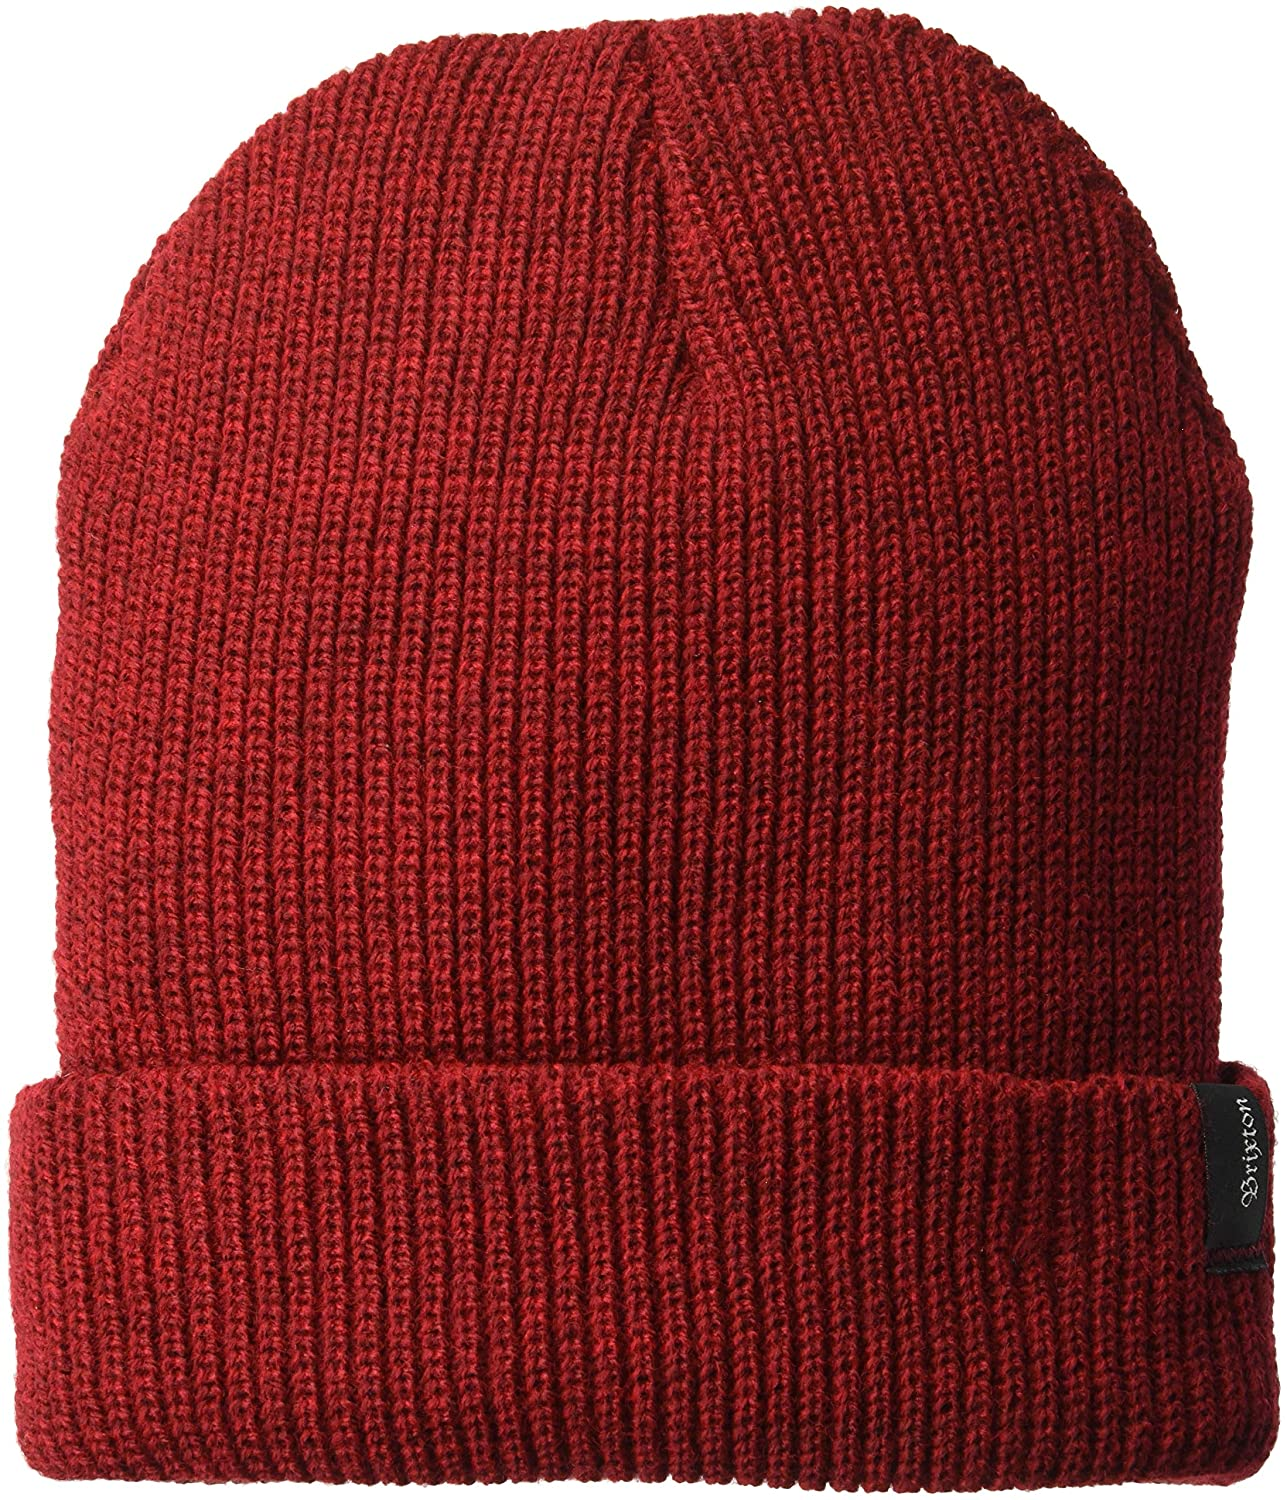 272f9d9fe5755 Amazon.com  Brixton Men s Heist Beanie Hat